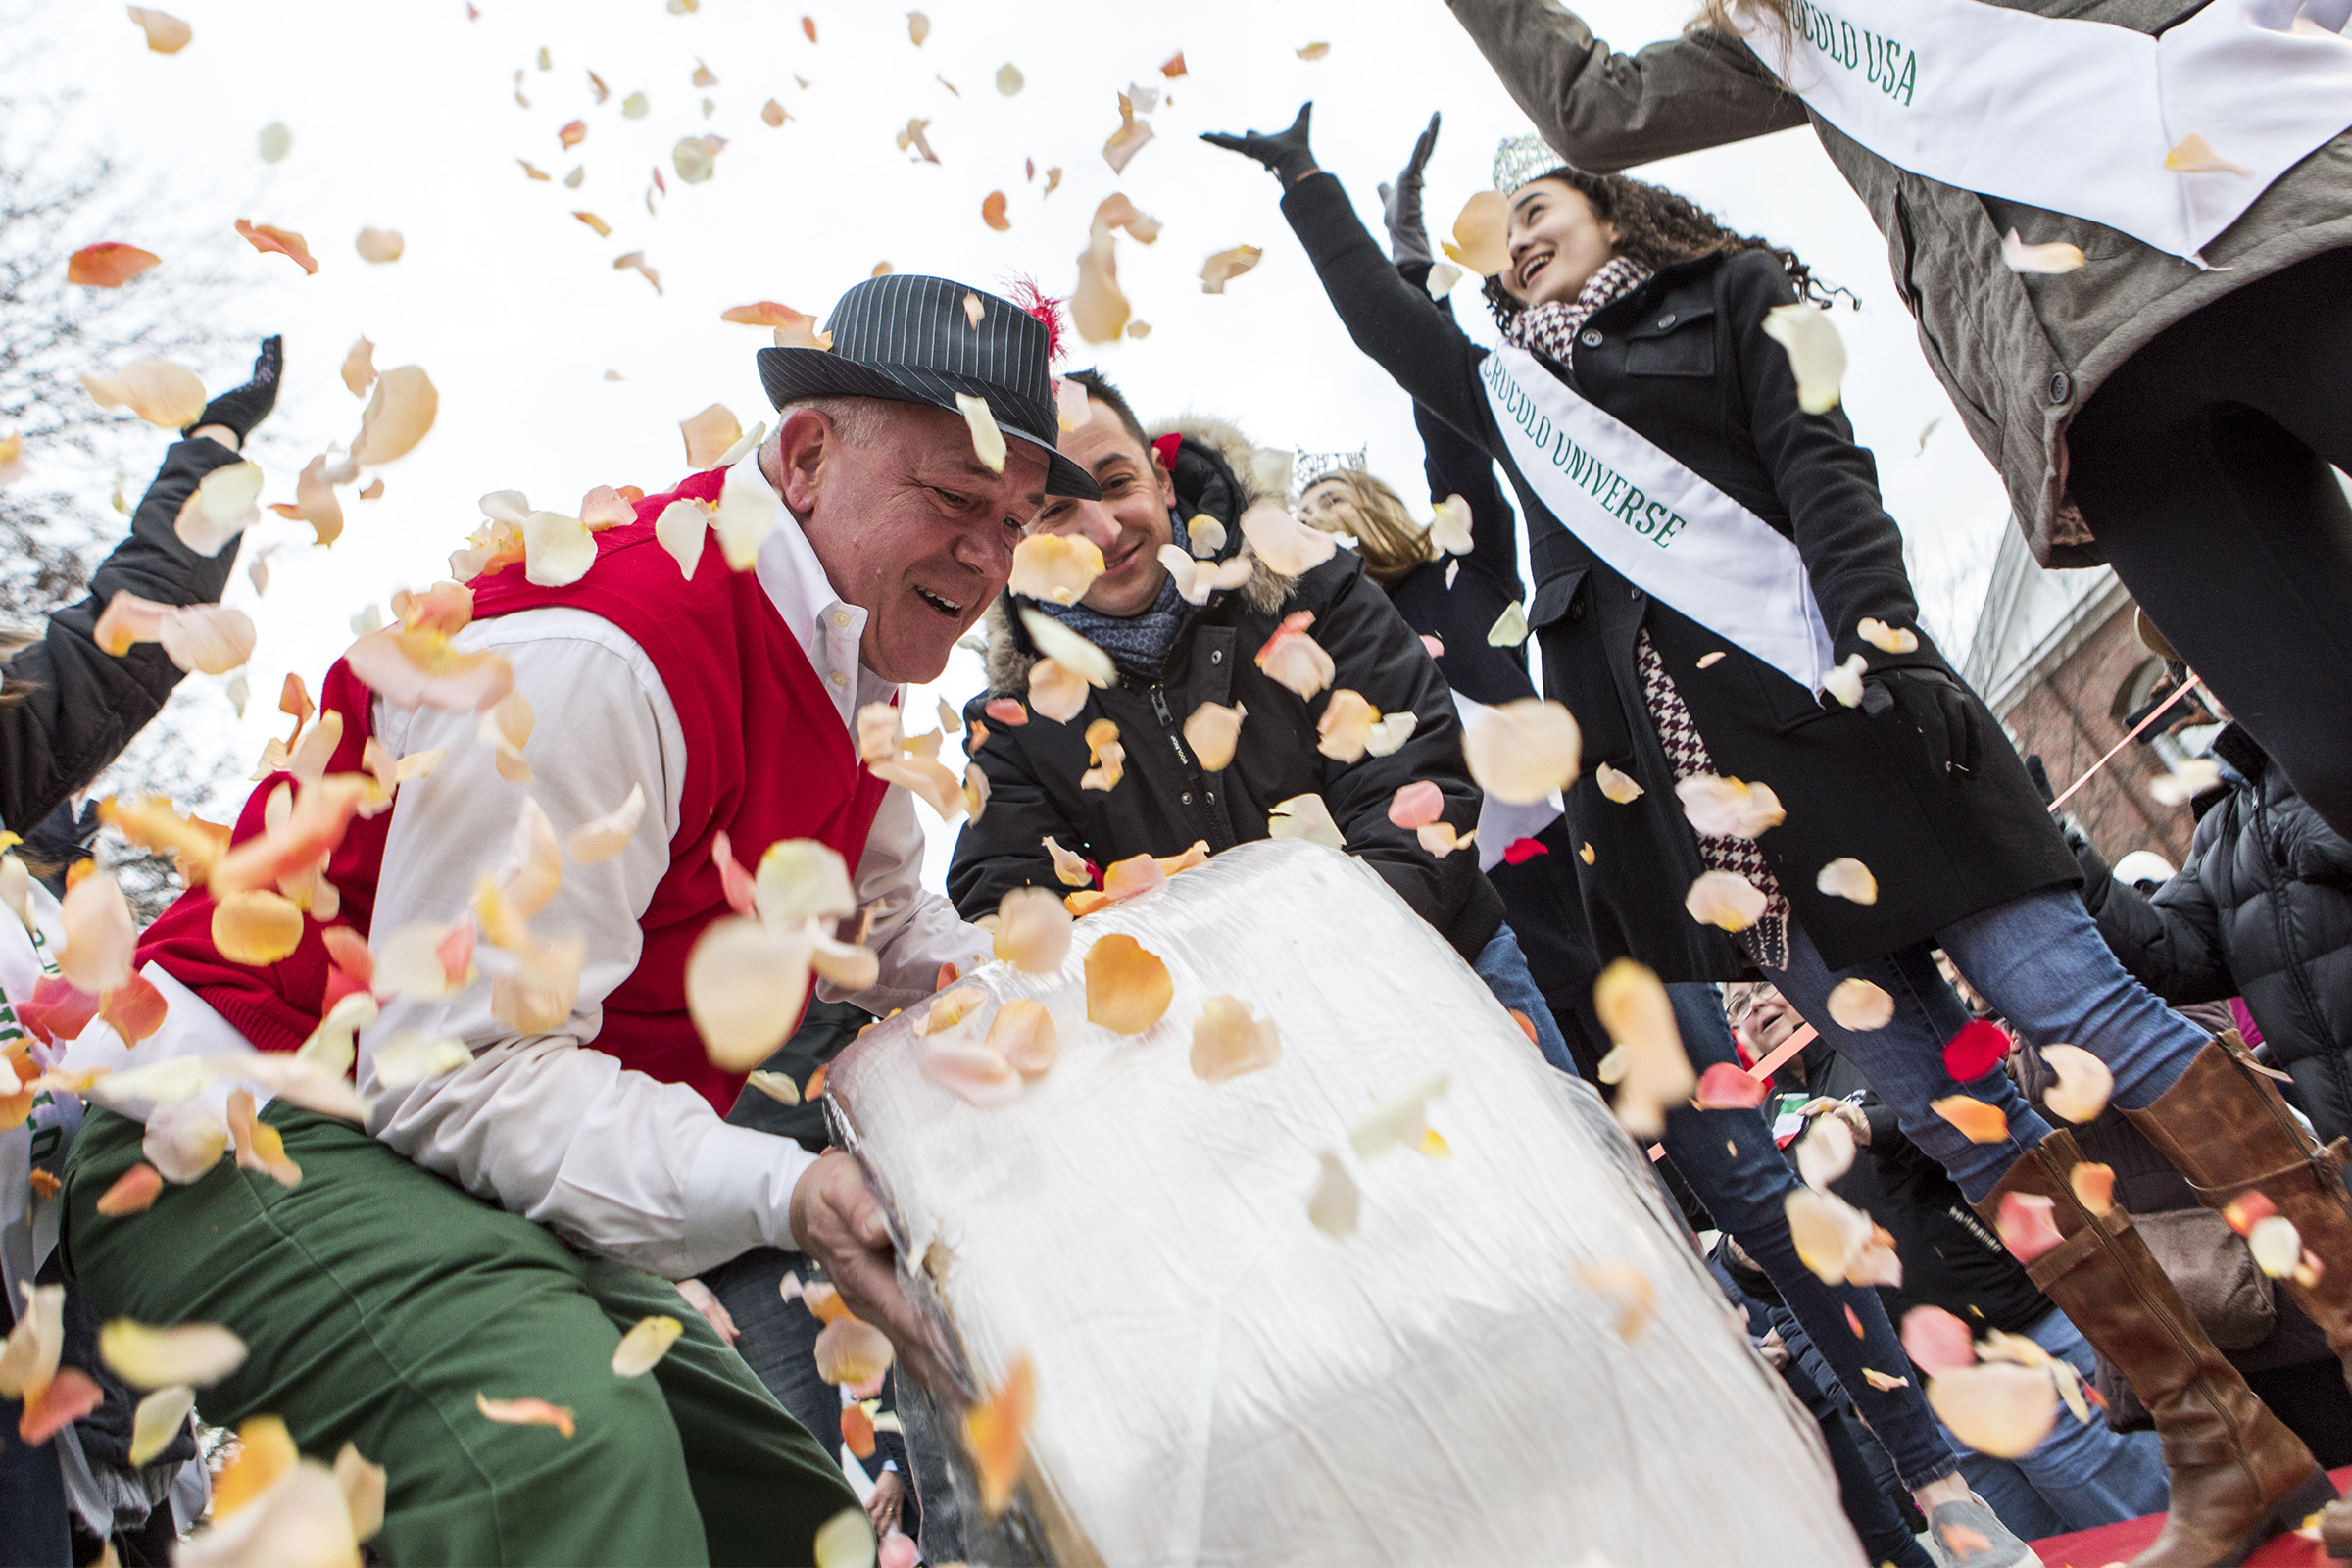 Peter Lovis, owner of the Concord Cheese Shop, rolls out the 400-pound wheel of Italian Crucolo Cheese during the 2018 Crucolo Cheese Parade in Concord on Dec. 6, 2018.